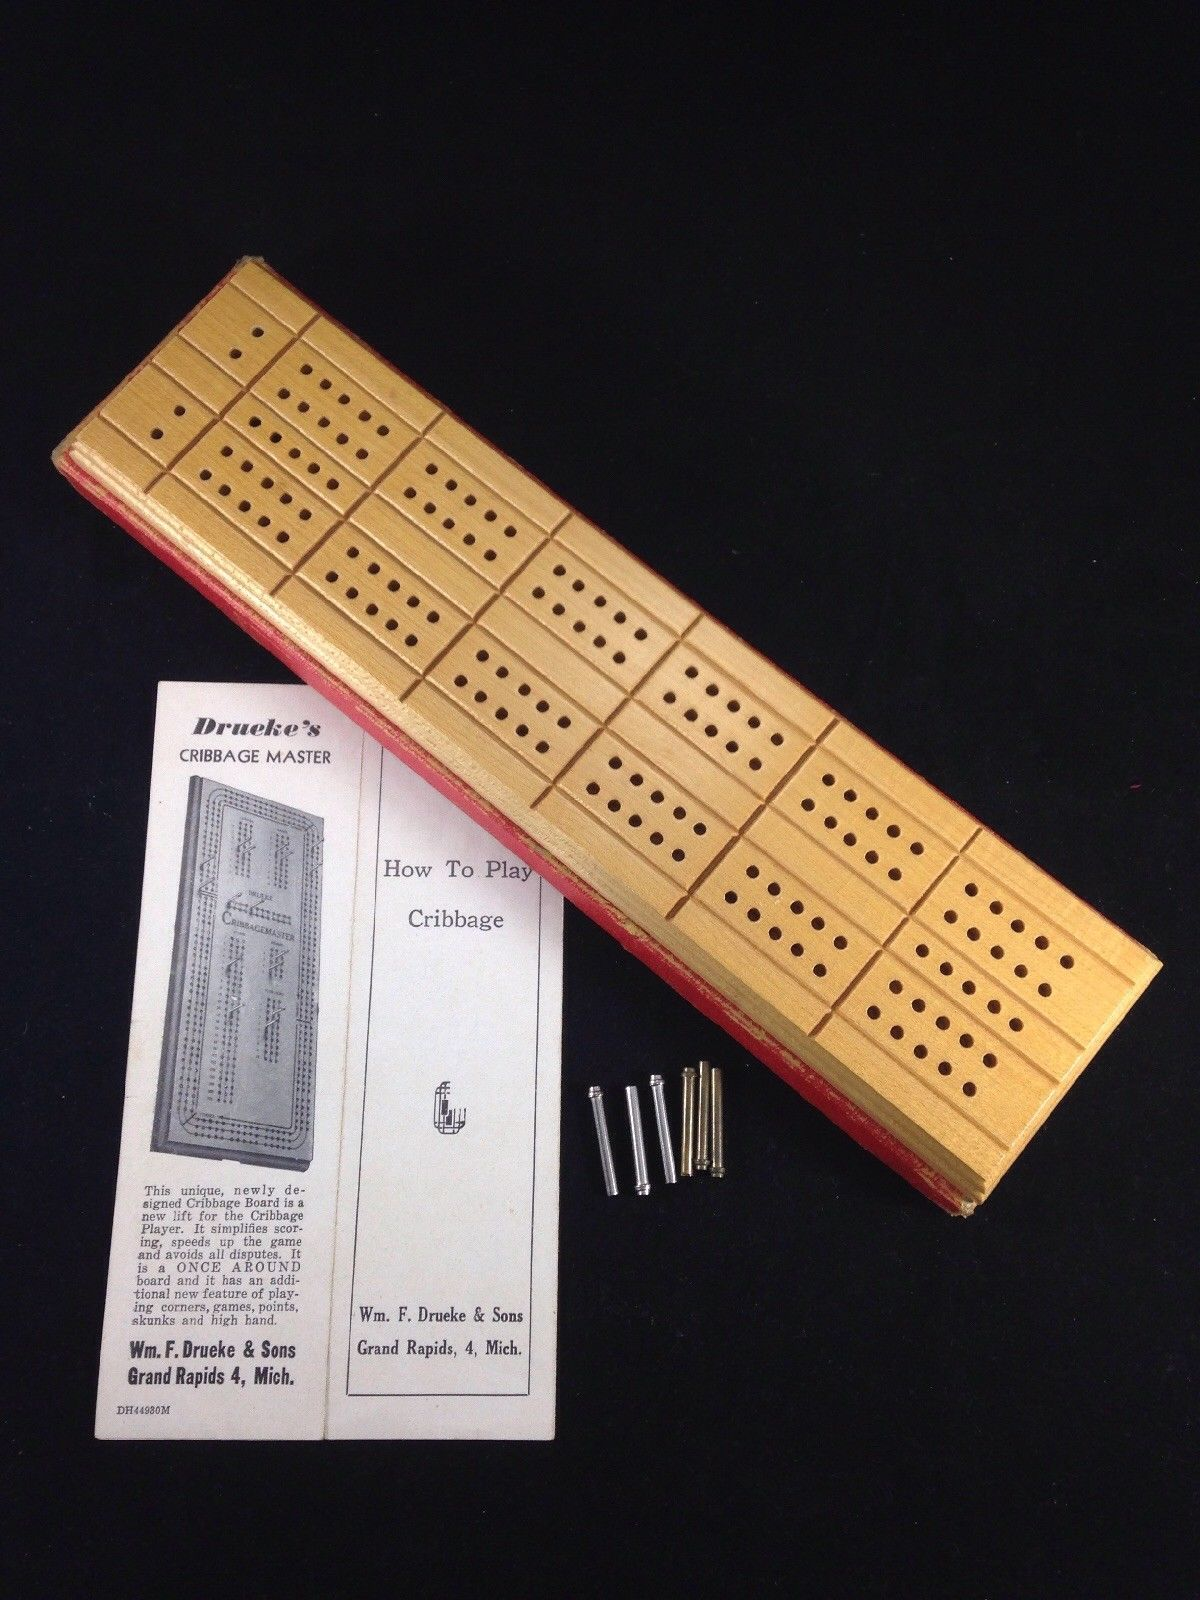 Drueke Vintage Wood Cribbage Master Board 5 And 18 Similar Items